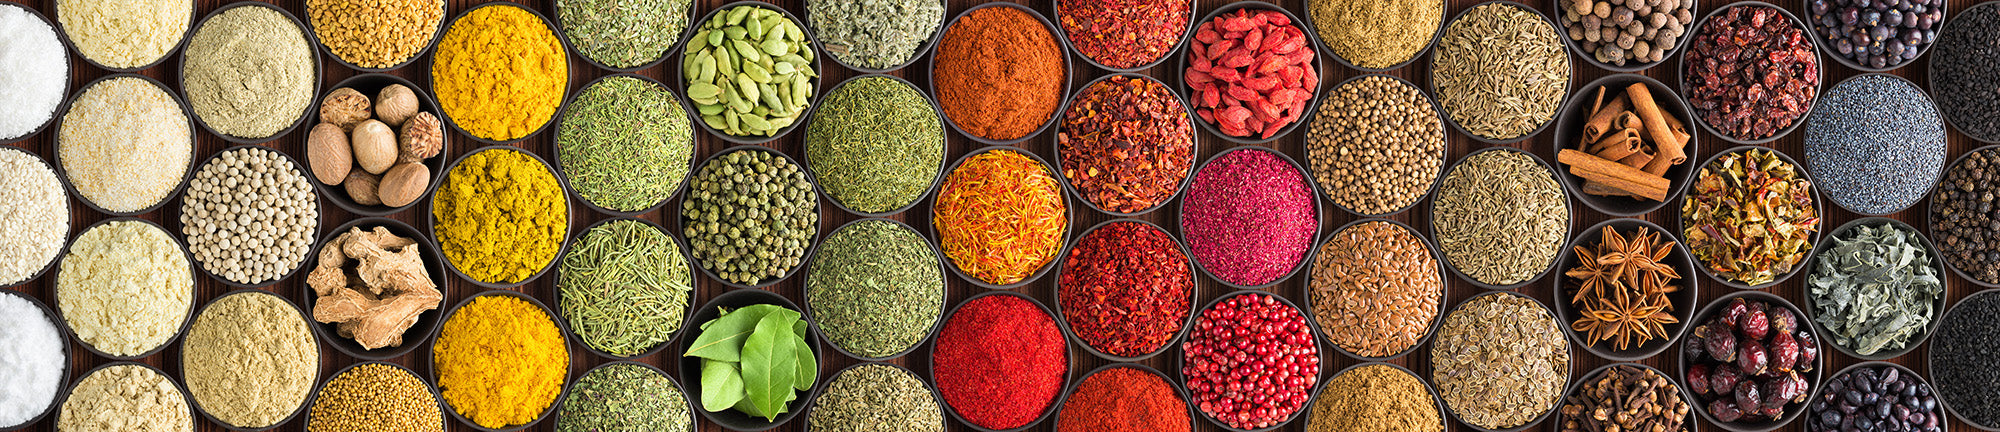 a collection of colorful spices from around the world